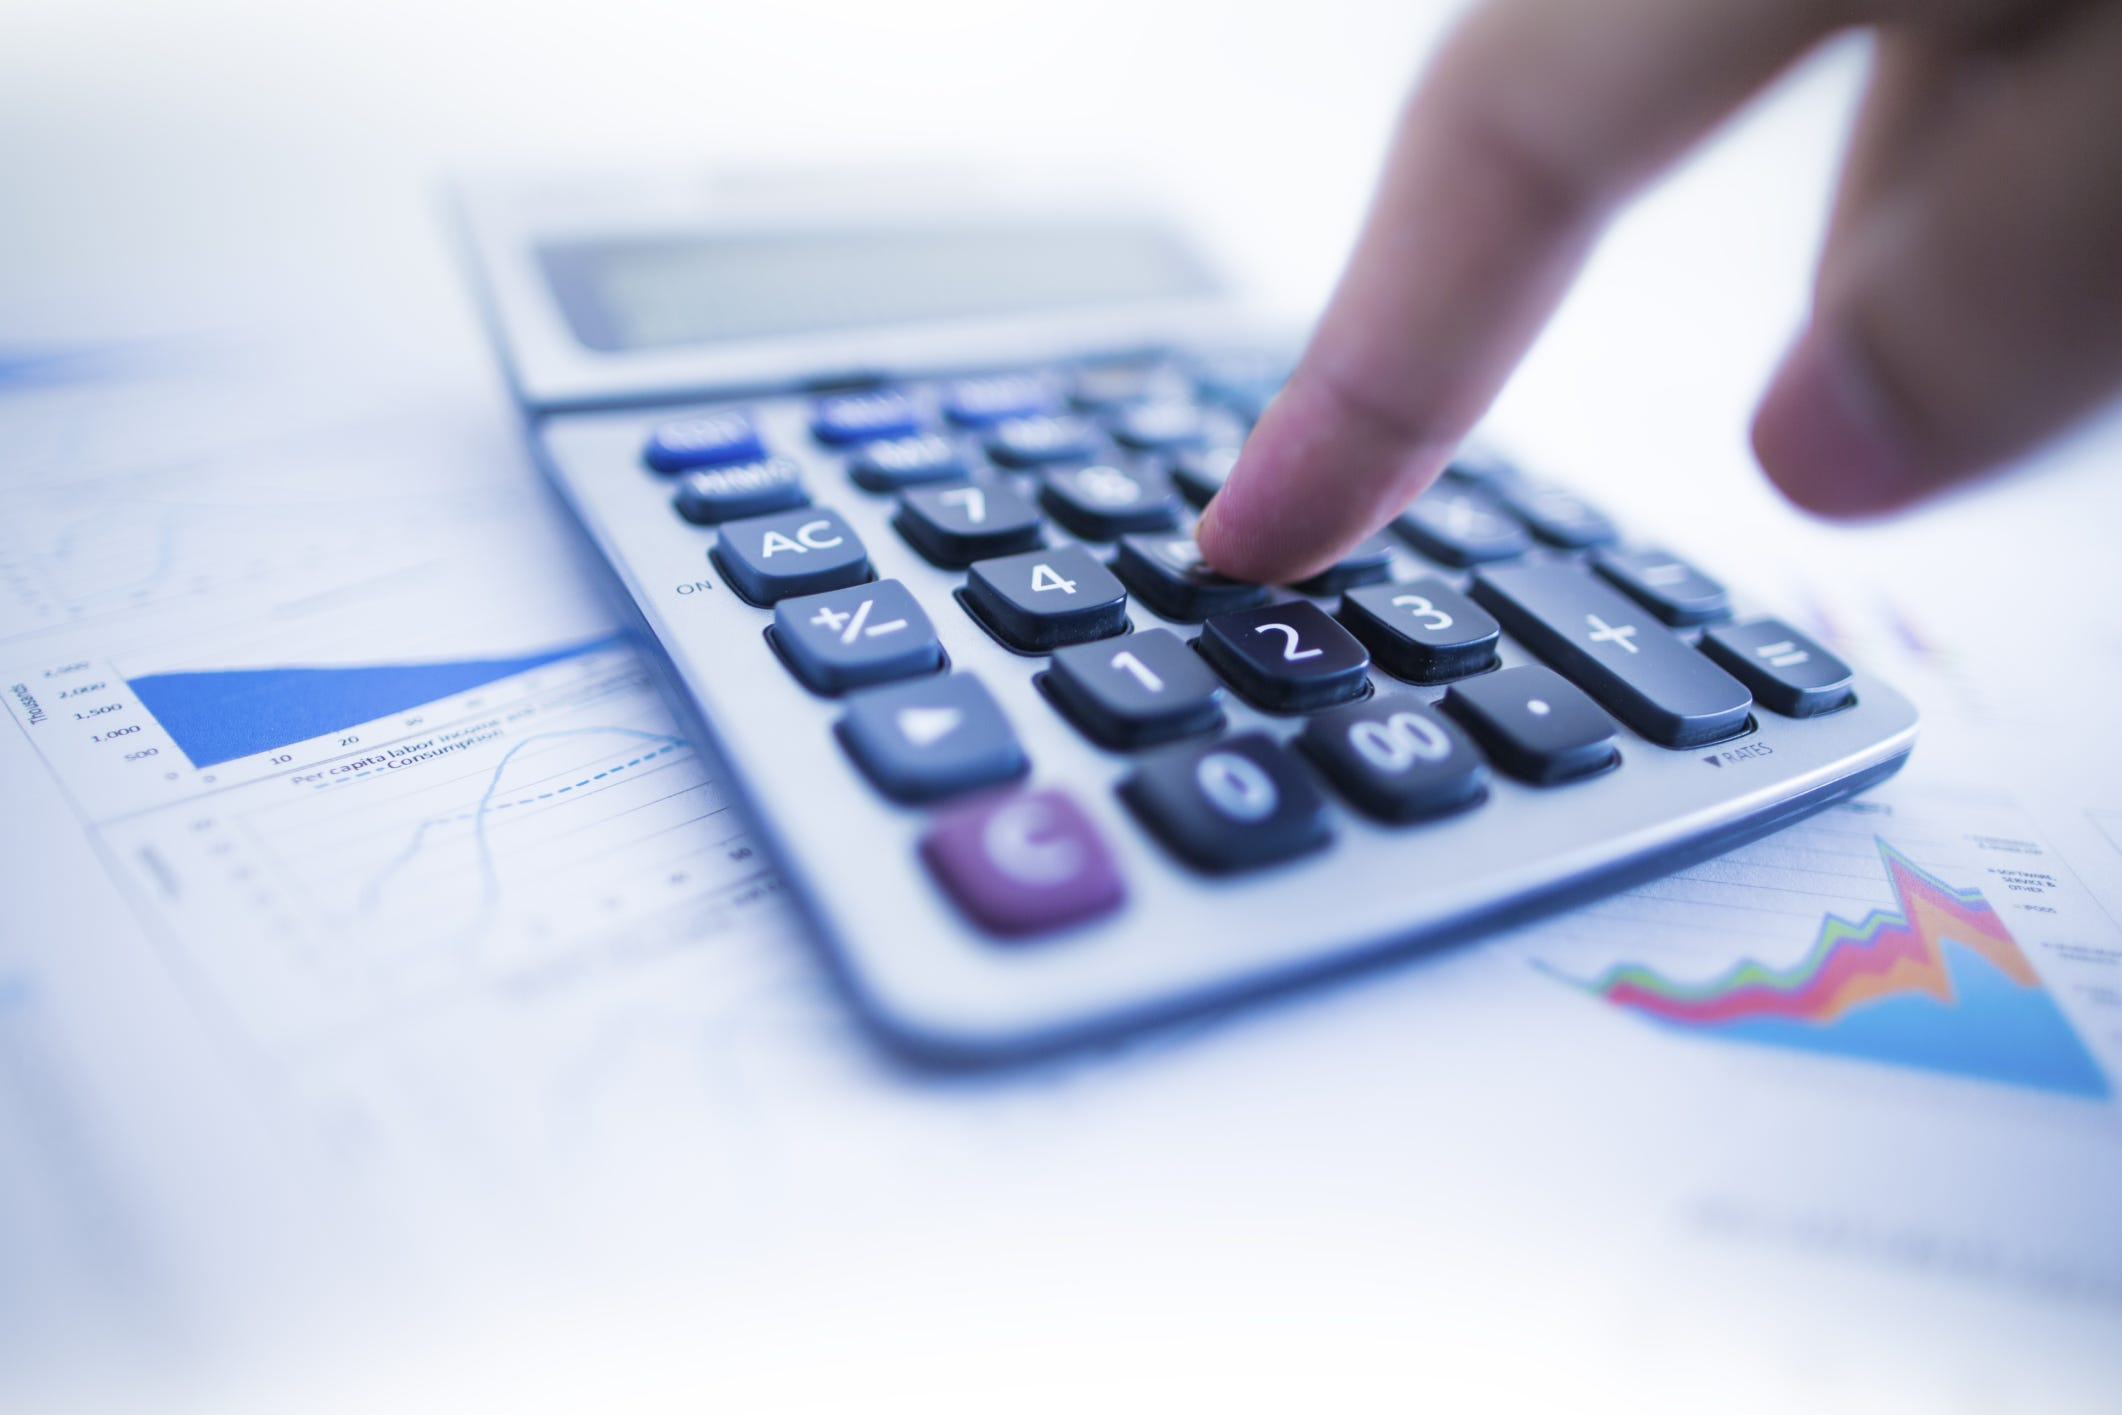 Forget month to month: A better way to budget